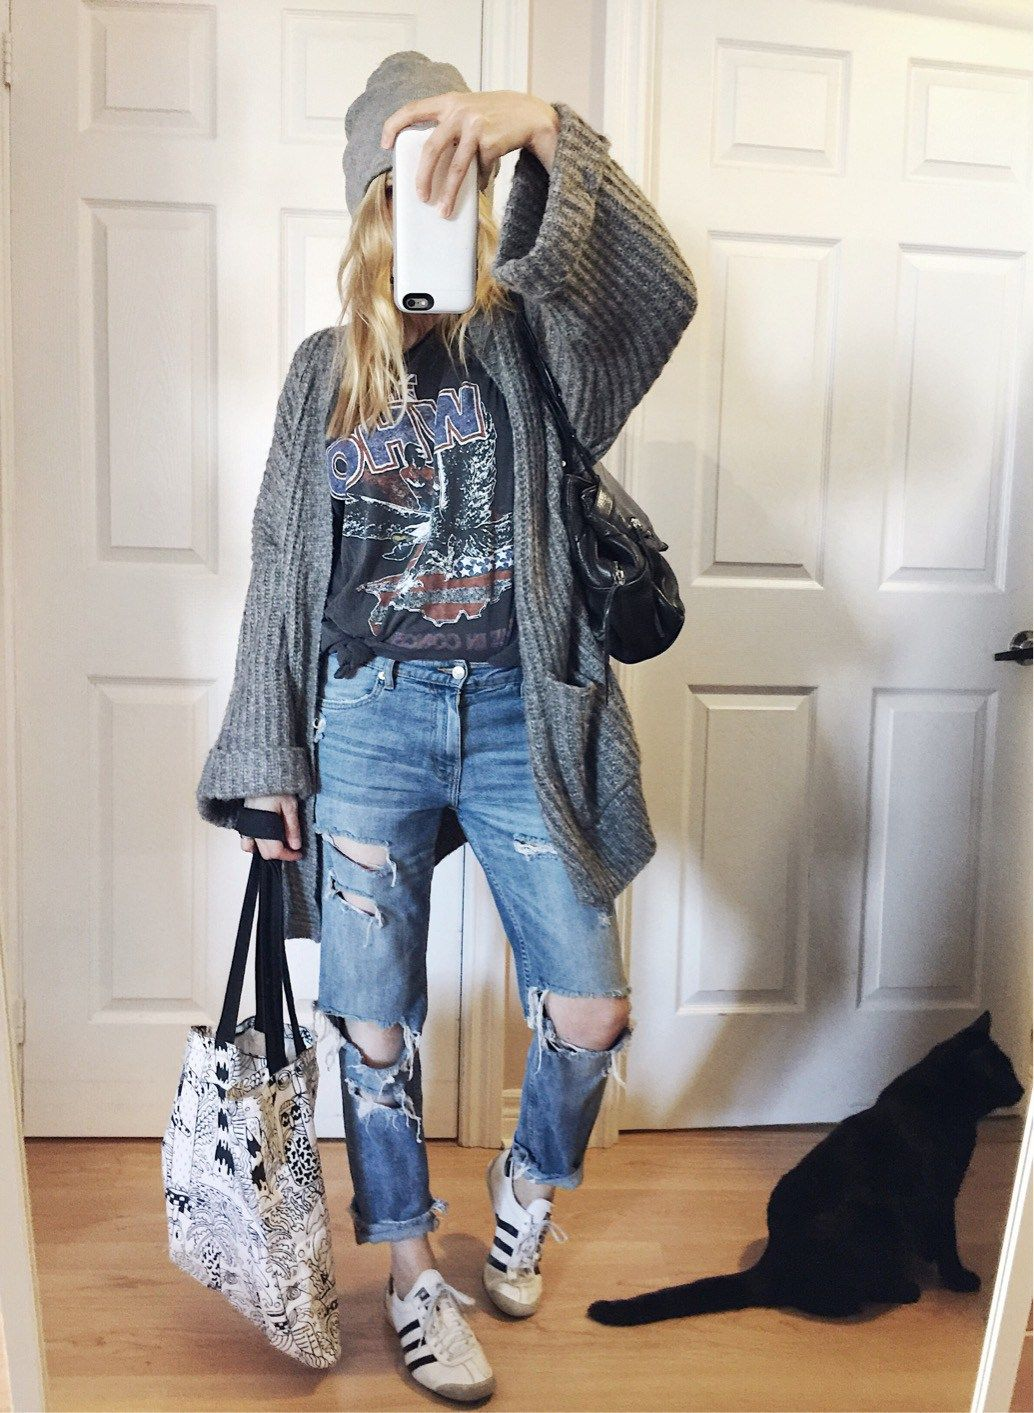 04197787cb Grey Oversized knit cardigan+black band tee+boyfriend jeans+beanie+white  sneakers+printed tote bag. Fall Casual Outfit 2017